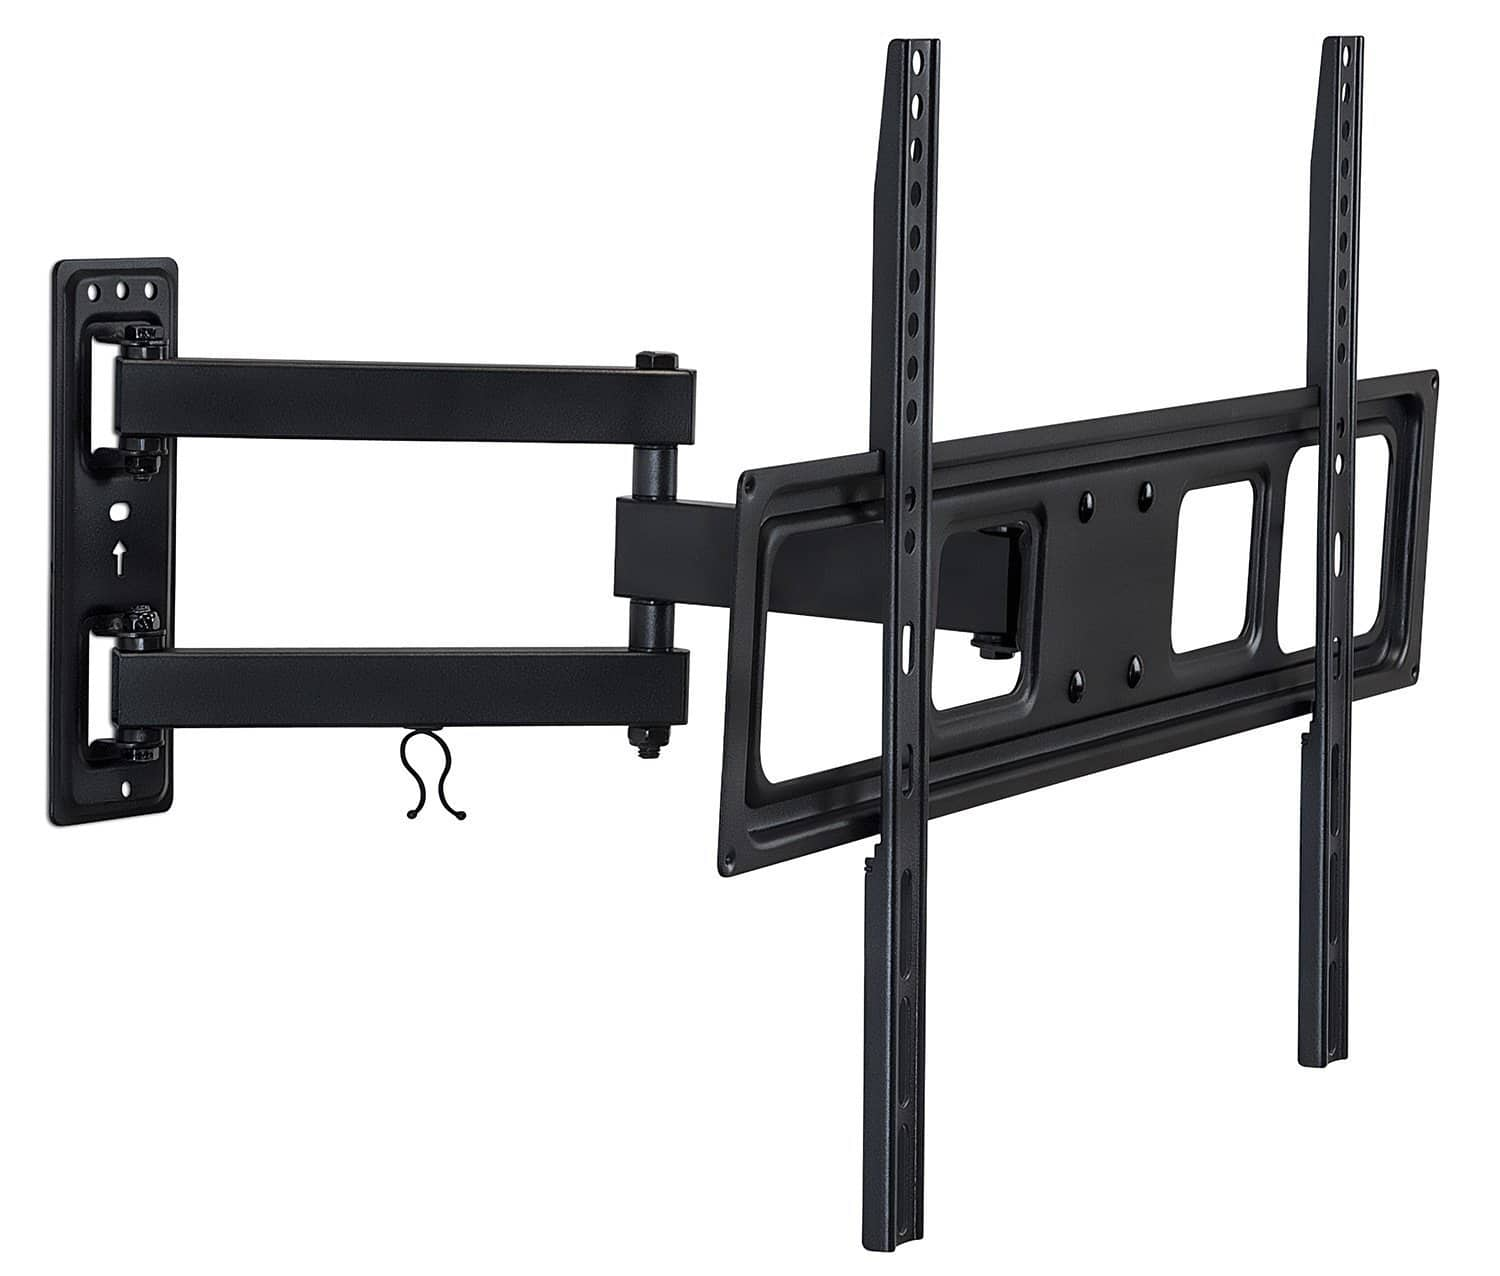 "Full motion 37-70"" tv wall mount $14.99 w/ free prime shipping."